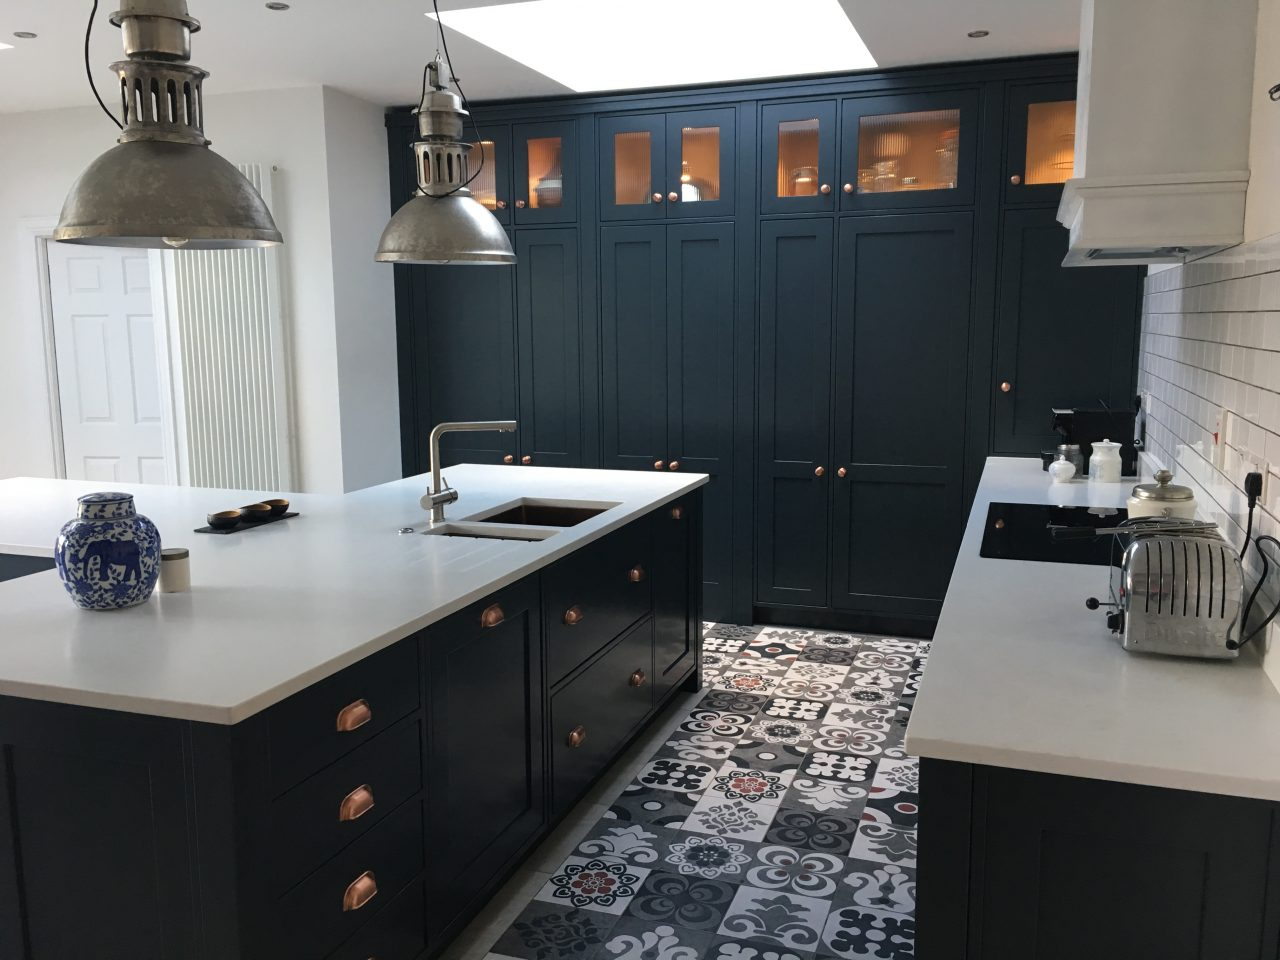 Ray's top tips when planning a new kitchen